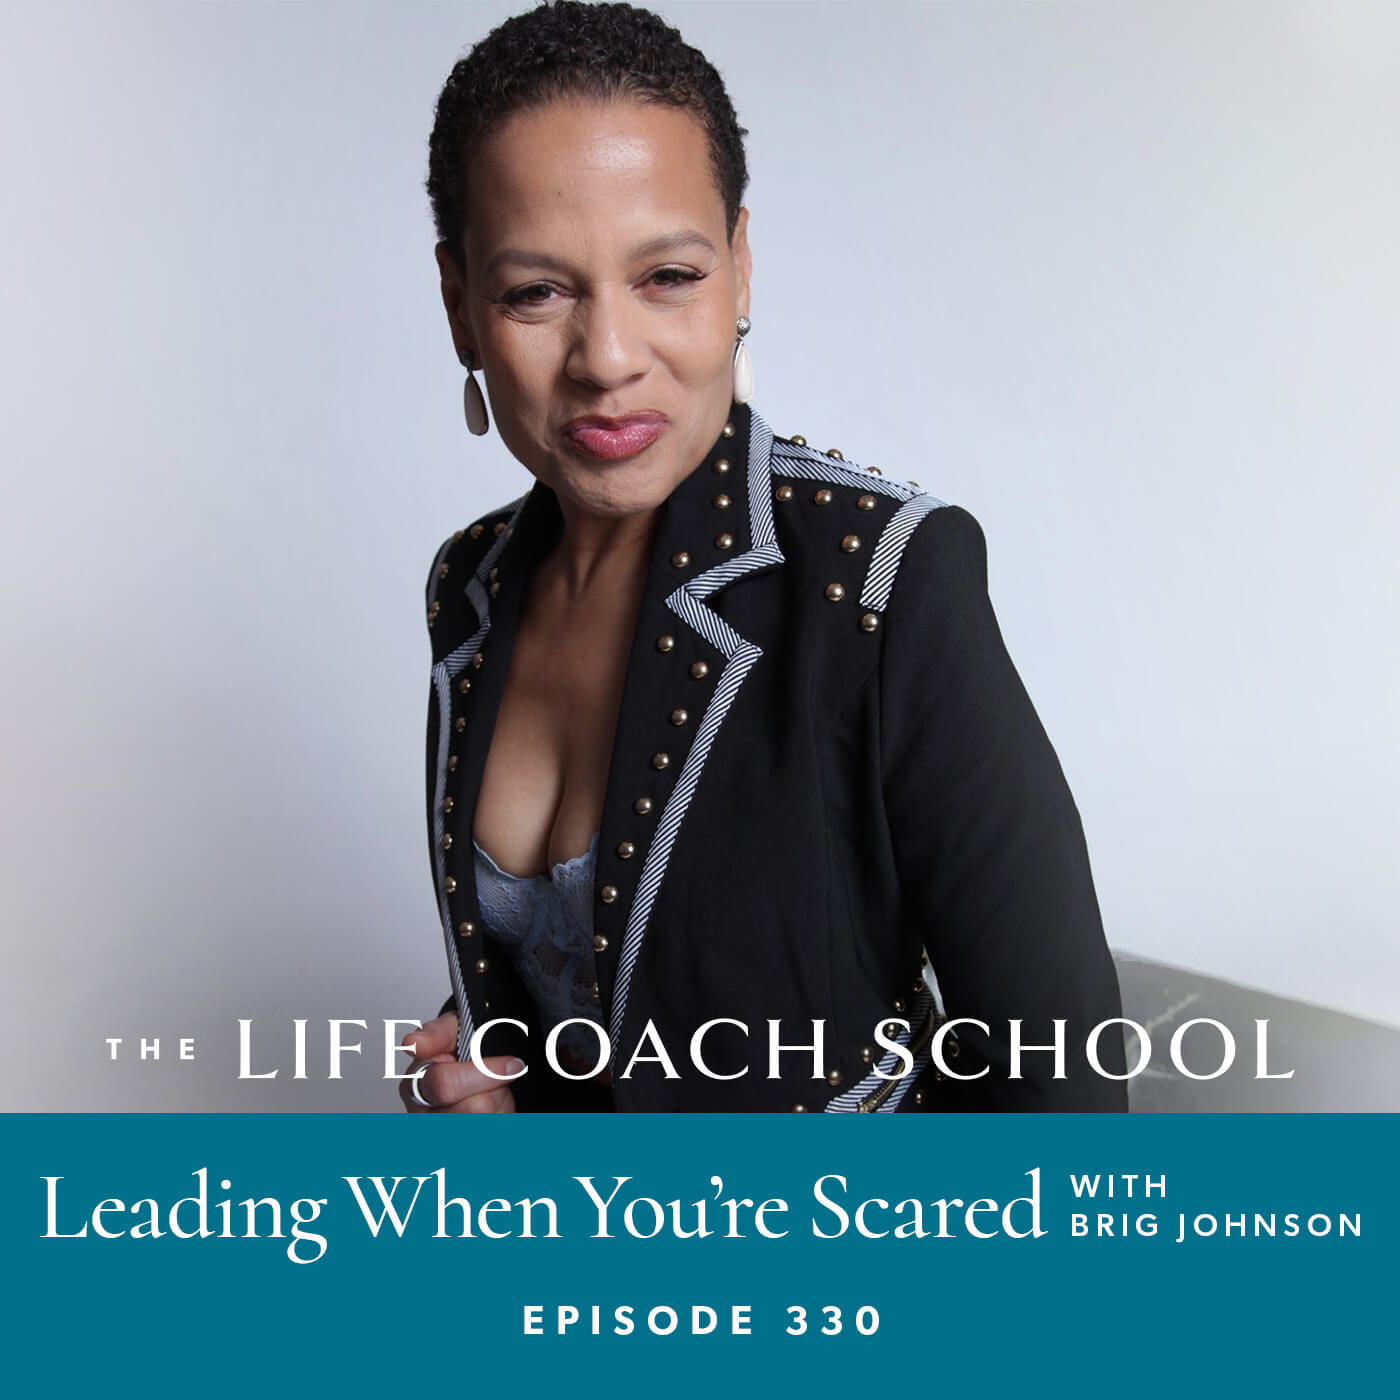 The Life Coach School Podcast with Brooke Castillo | Episode 330 | Leading When You're Scared with Brig Johnson